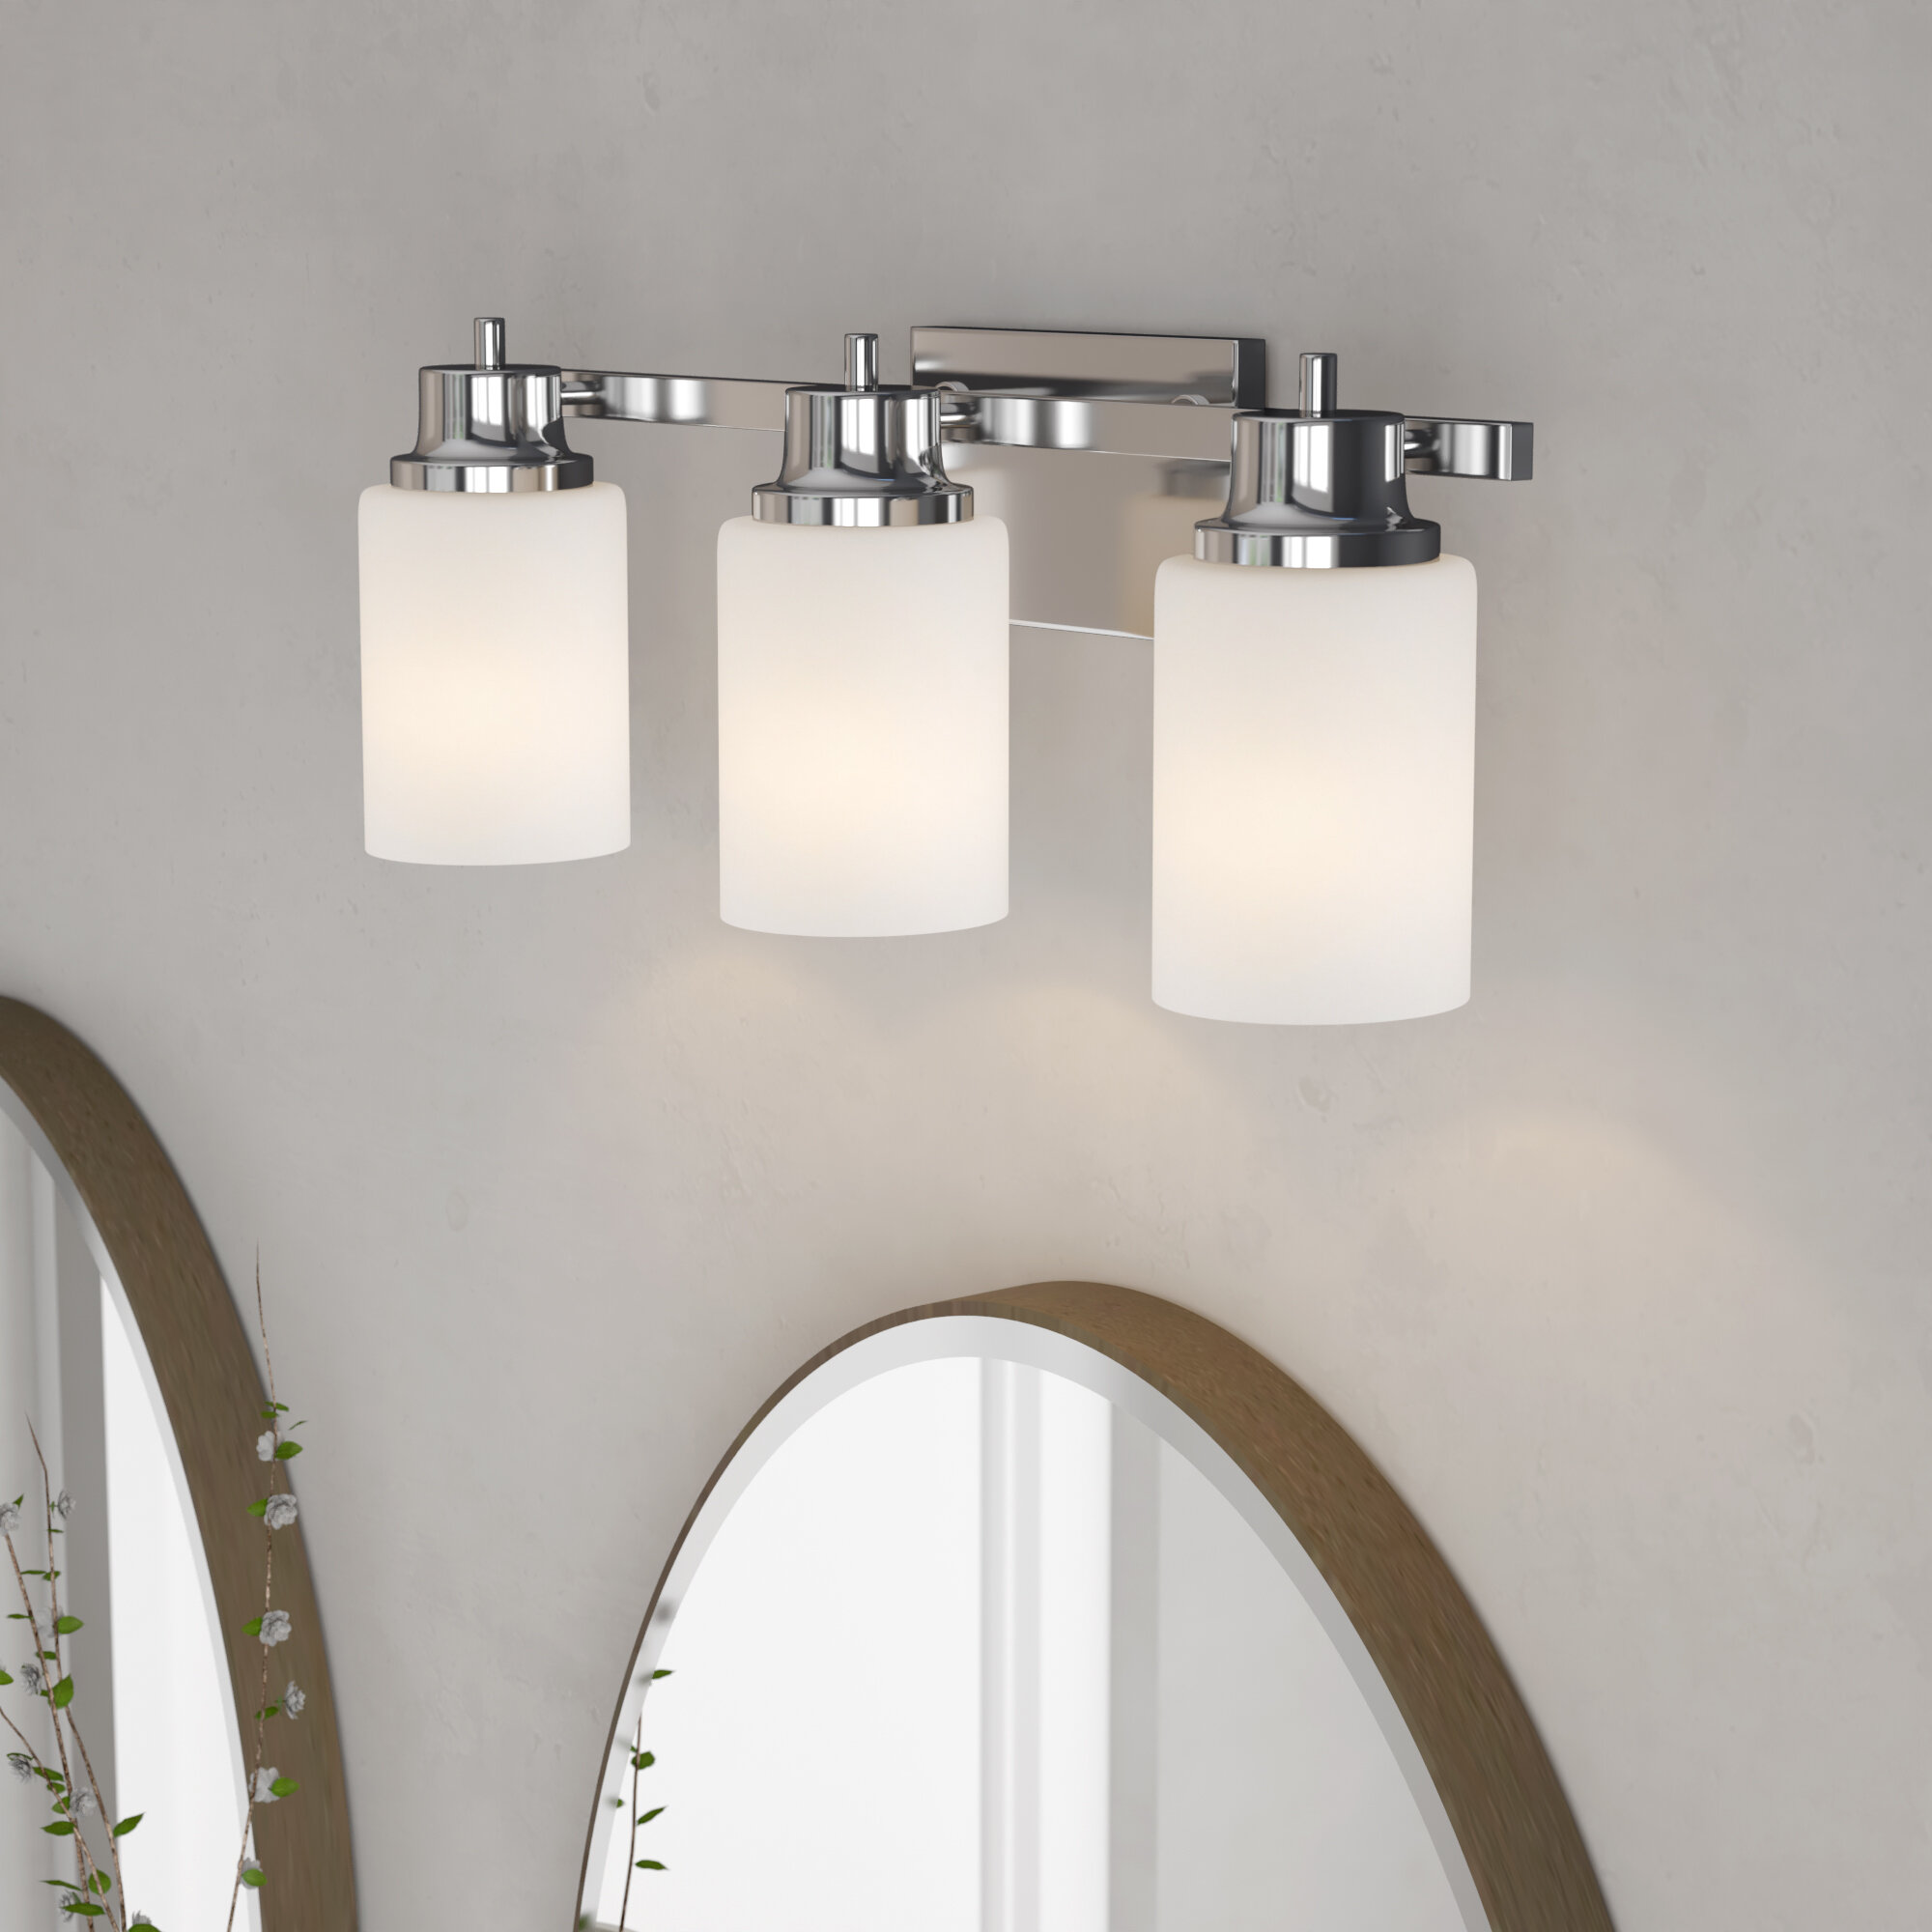 Orren Ellis Ryerson Contemporary 3 Light Vanity Light Reviews Wayfair